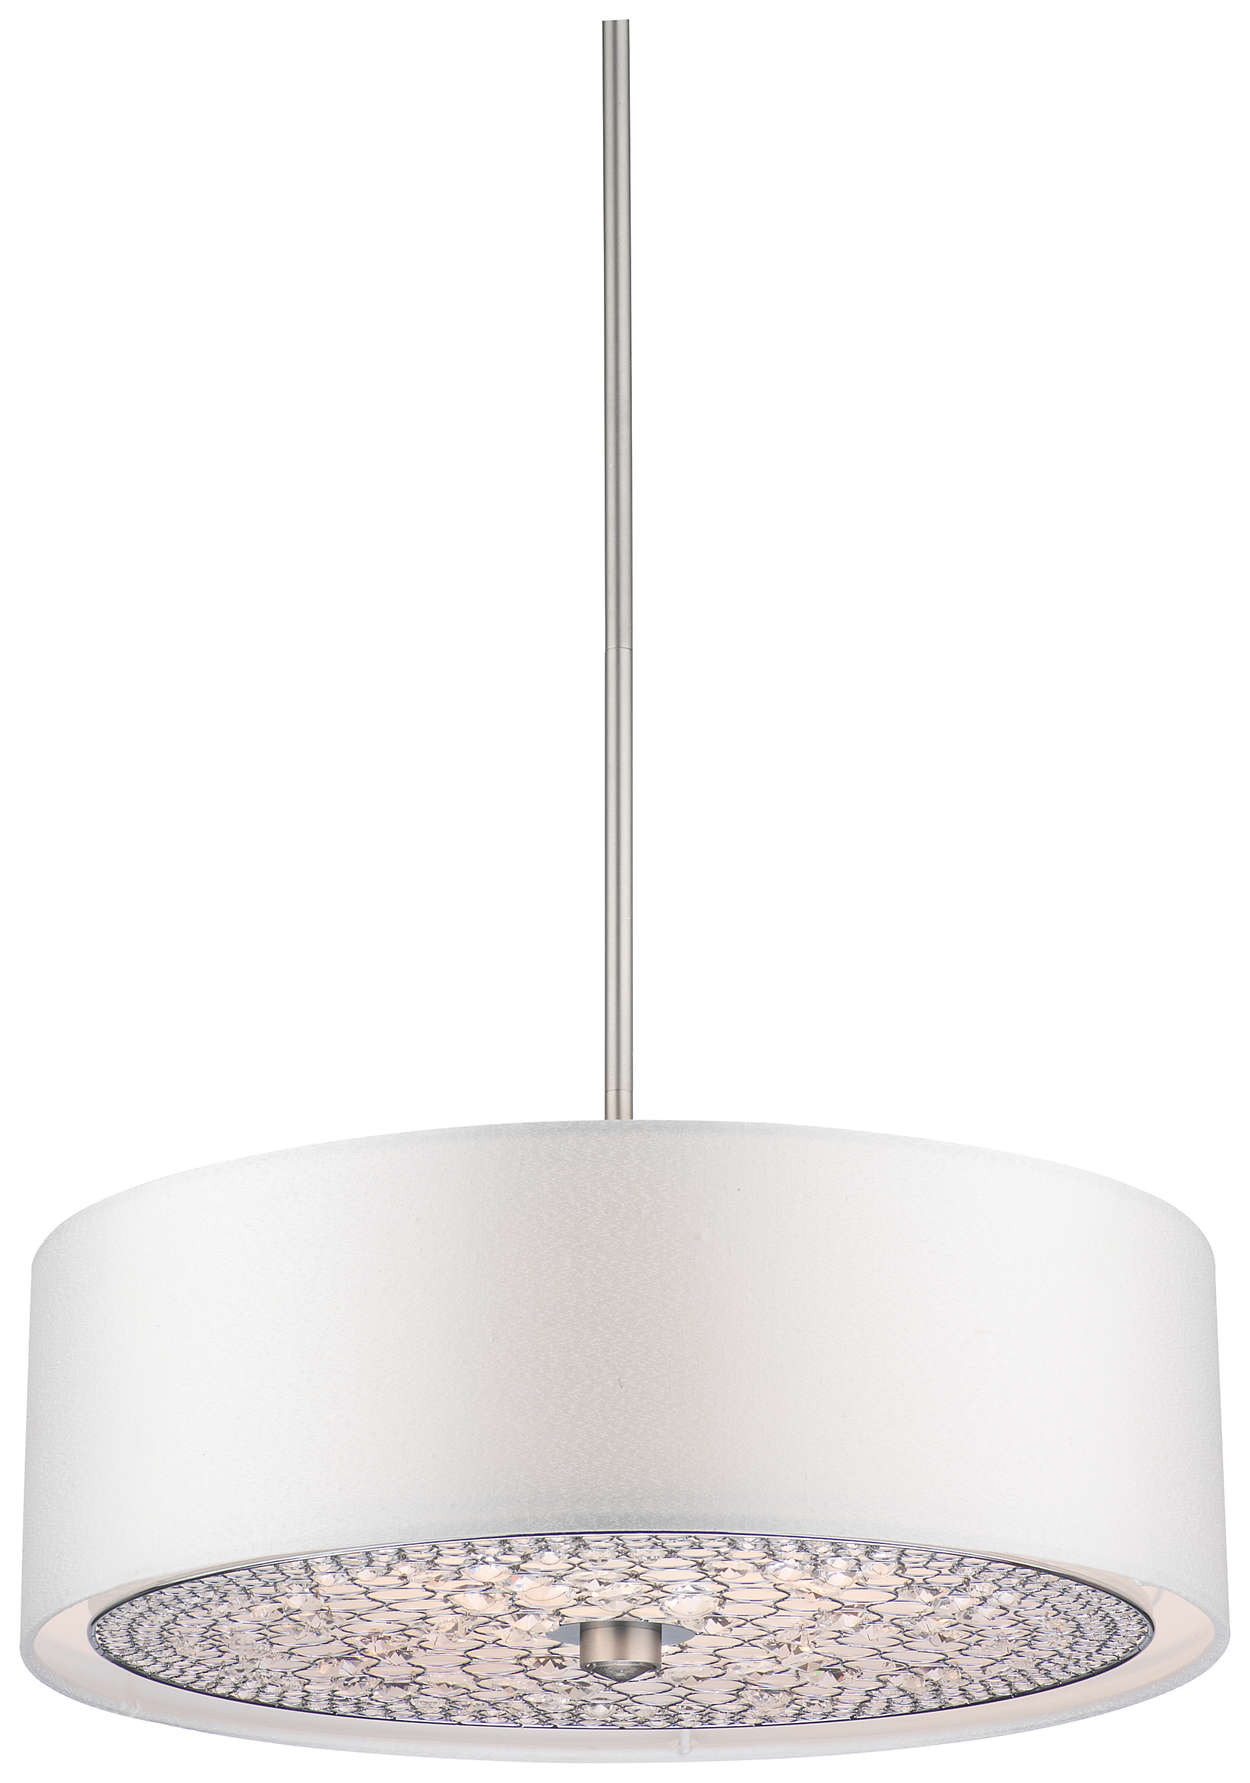 Pavo 3-light Pendant in Brushed Nickel finish